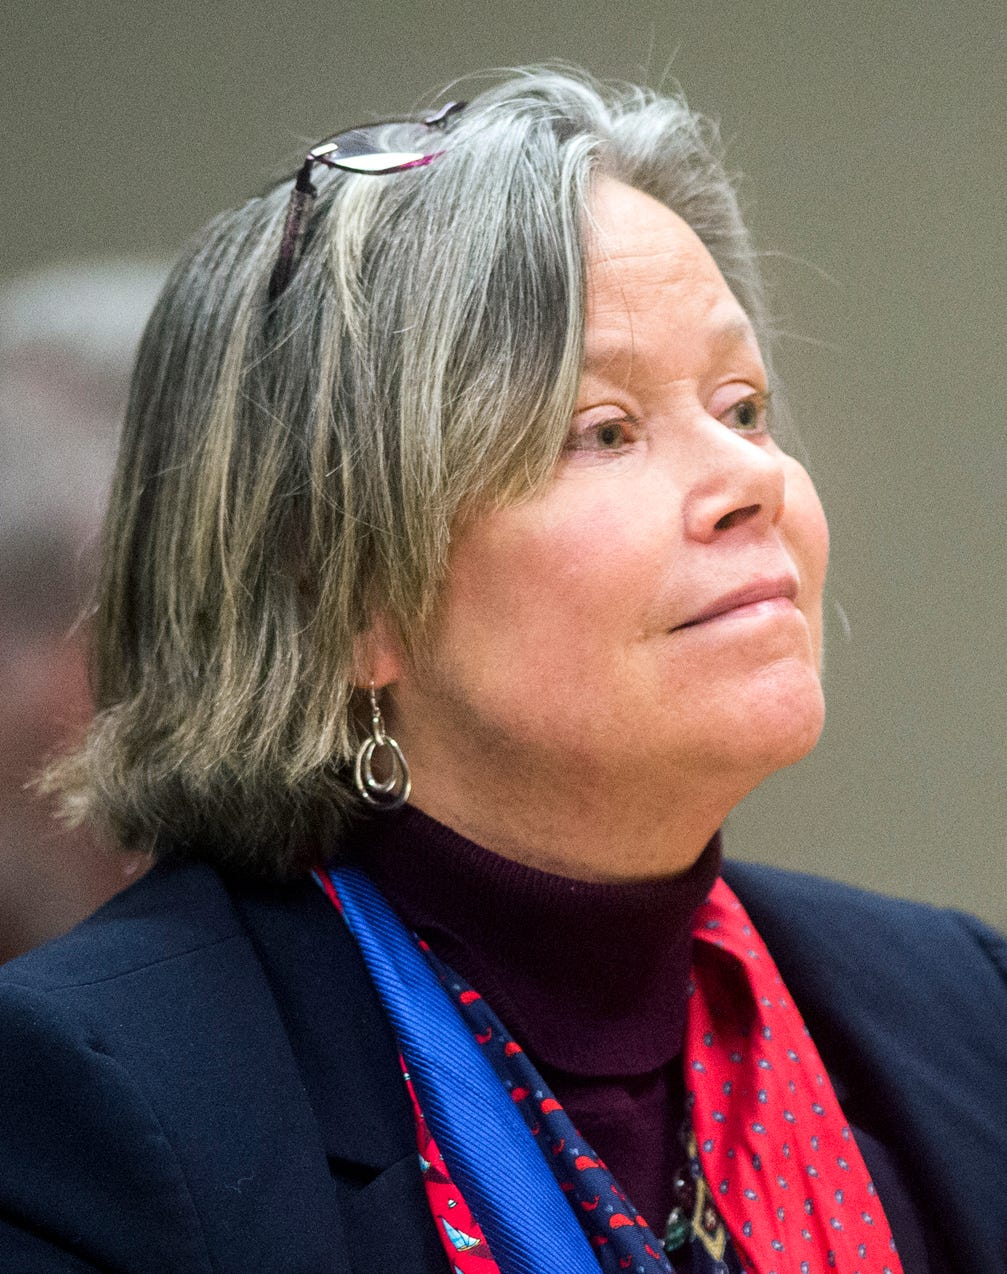 Chief Medical Executive Eden Wells has so far required $723,200 for her defense.